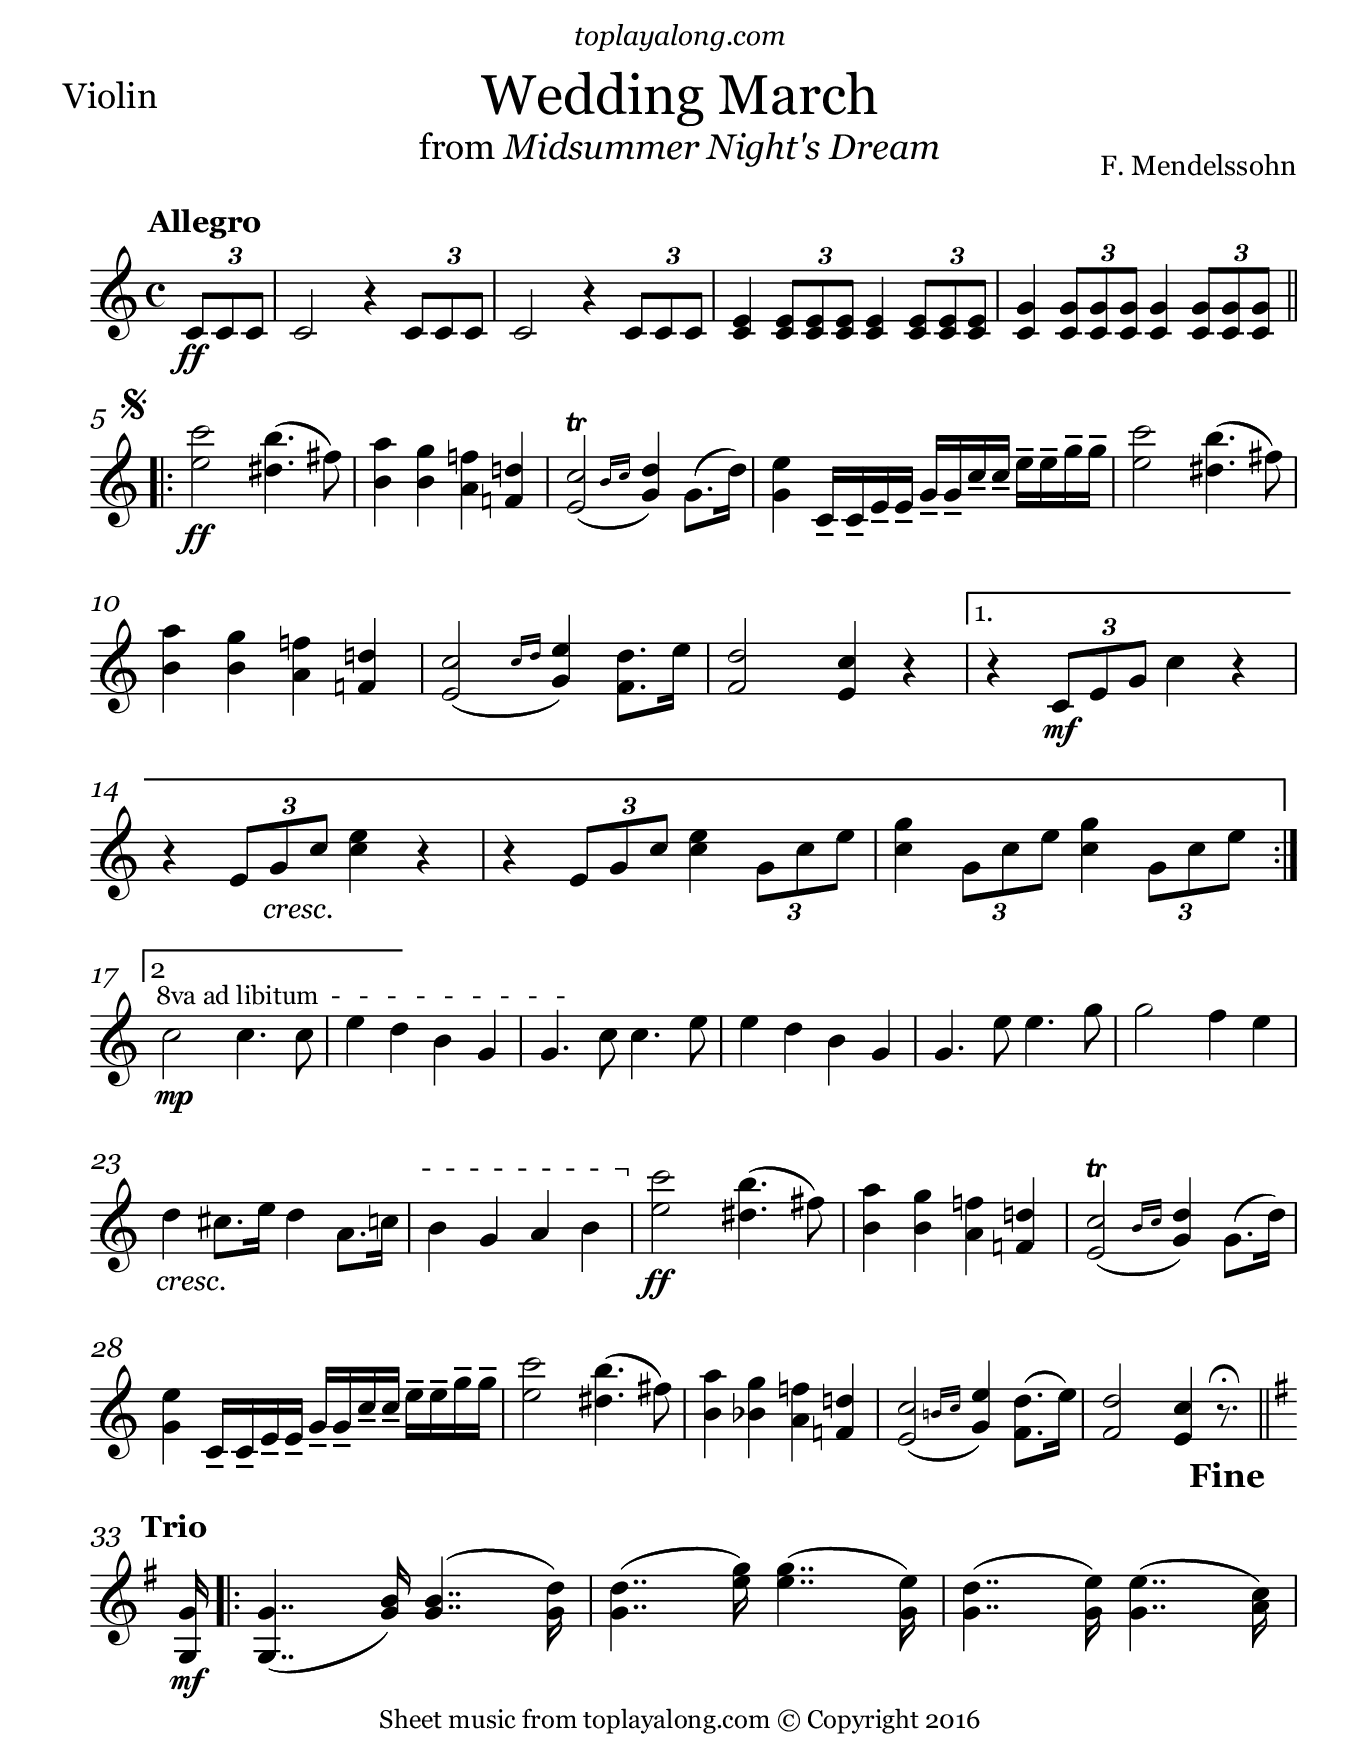 Wedding March from Midsummer Night's Dream by Mendelssohn. Sheet music for Violin, page 1.